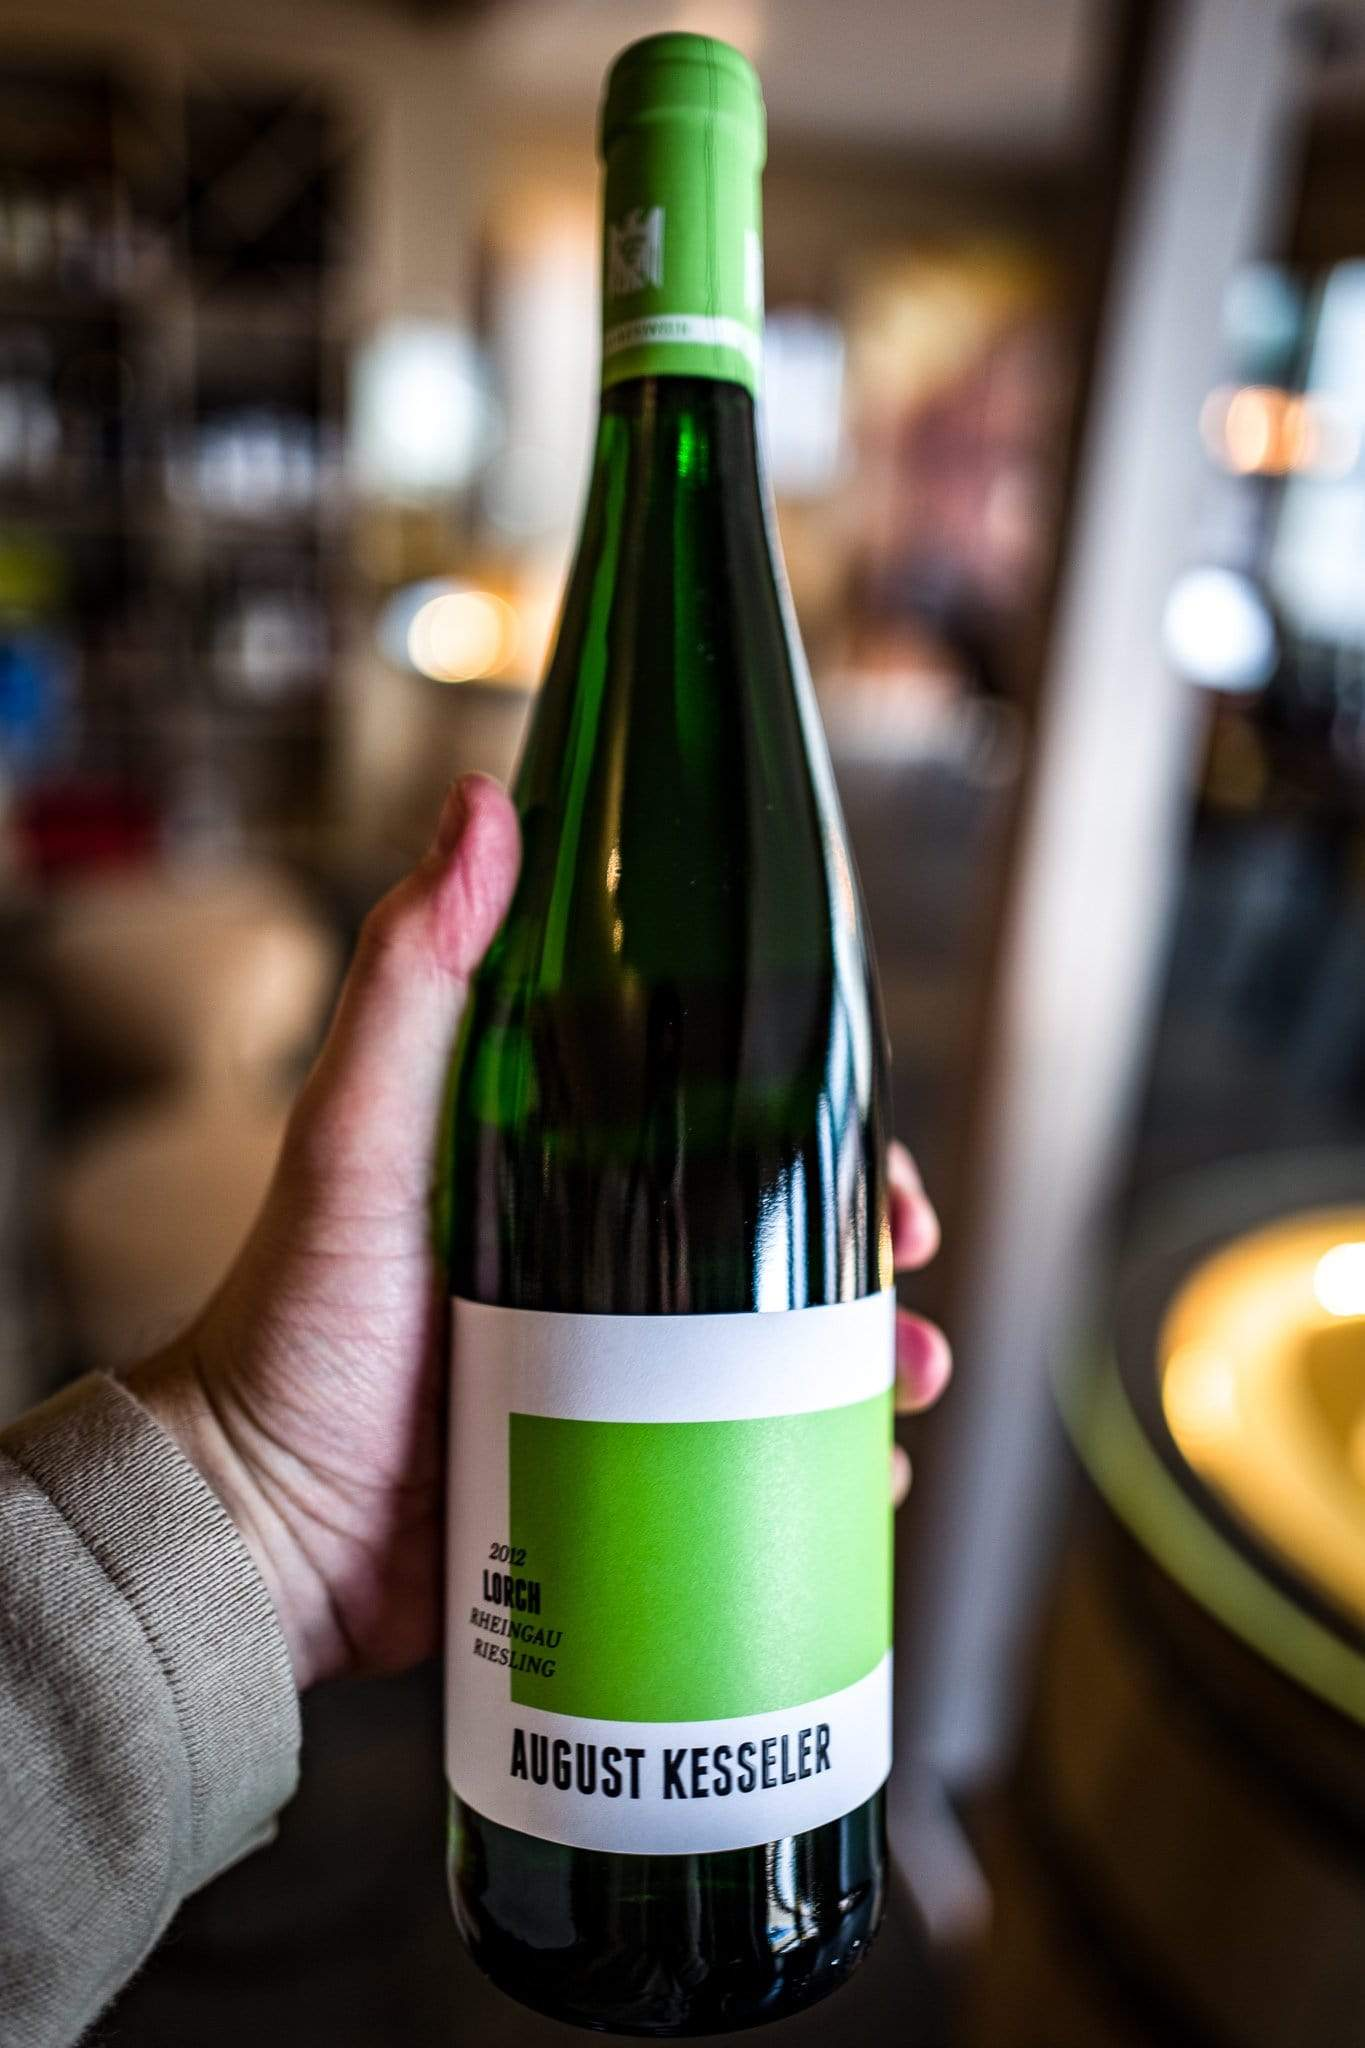 Image of   August Kesseler Lorch 2012 VDP Trocken Rheingau Riesling